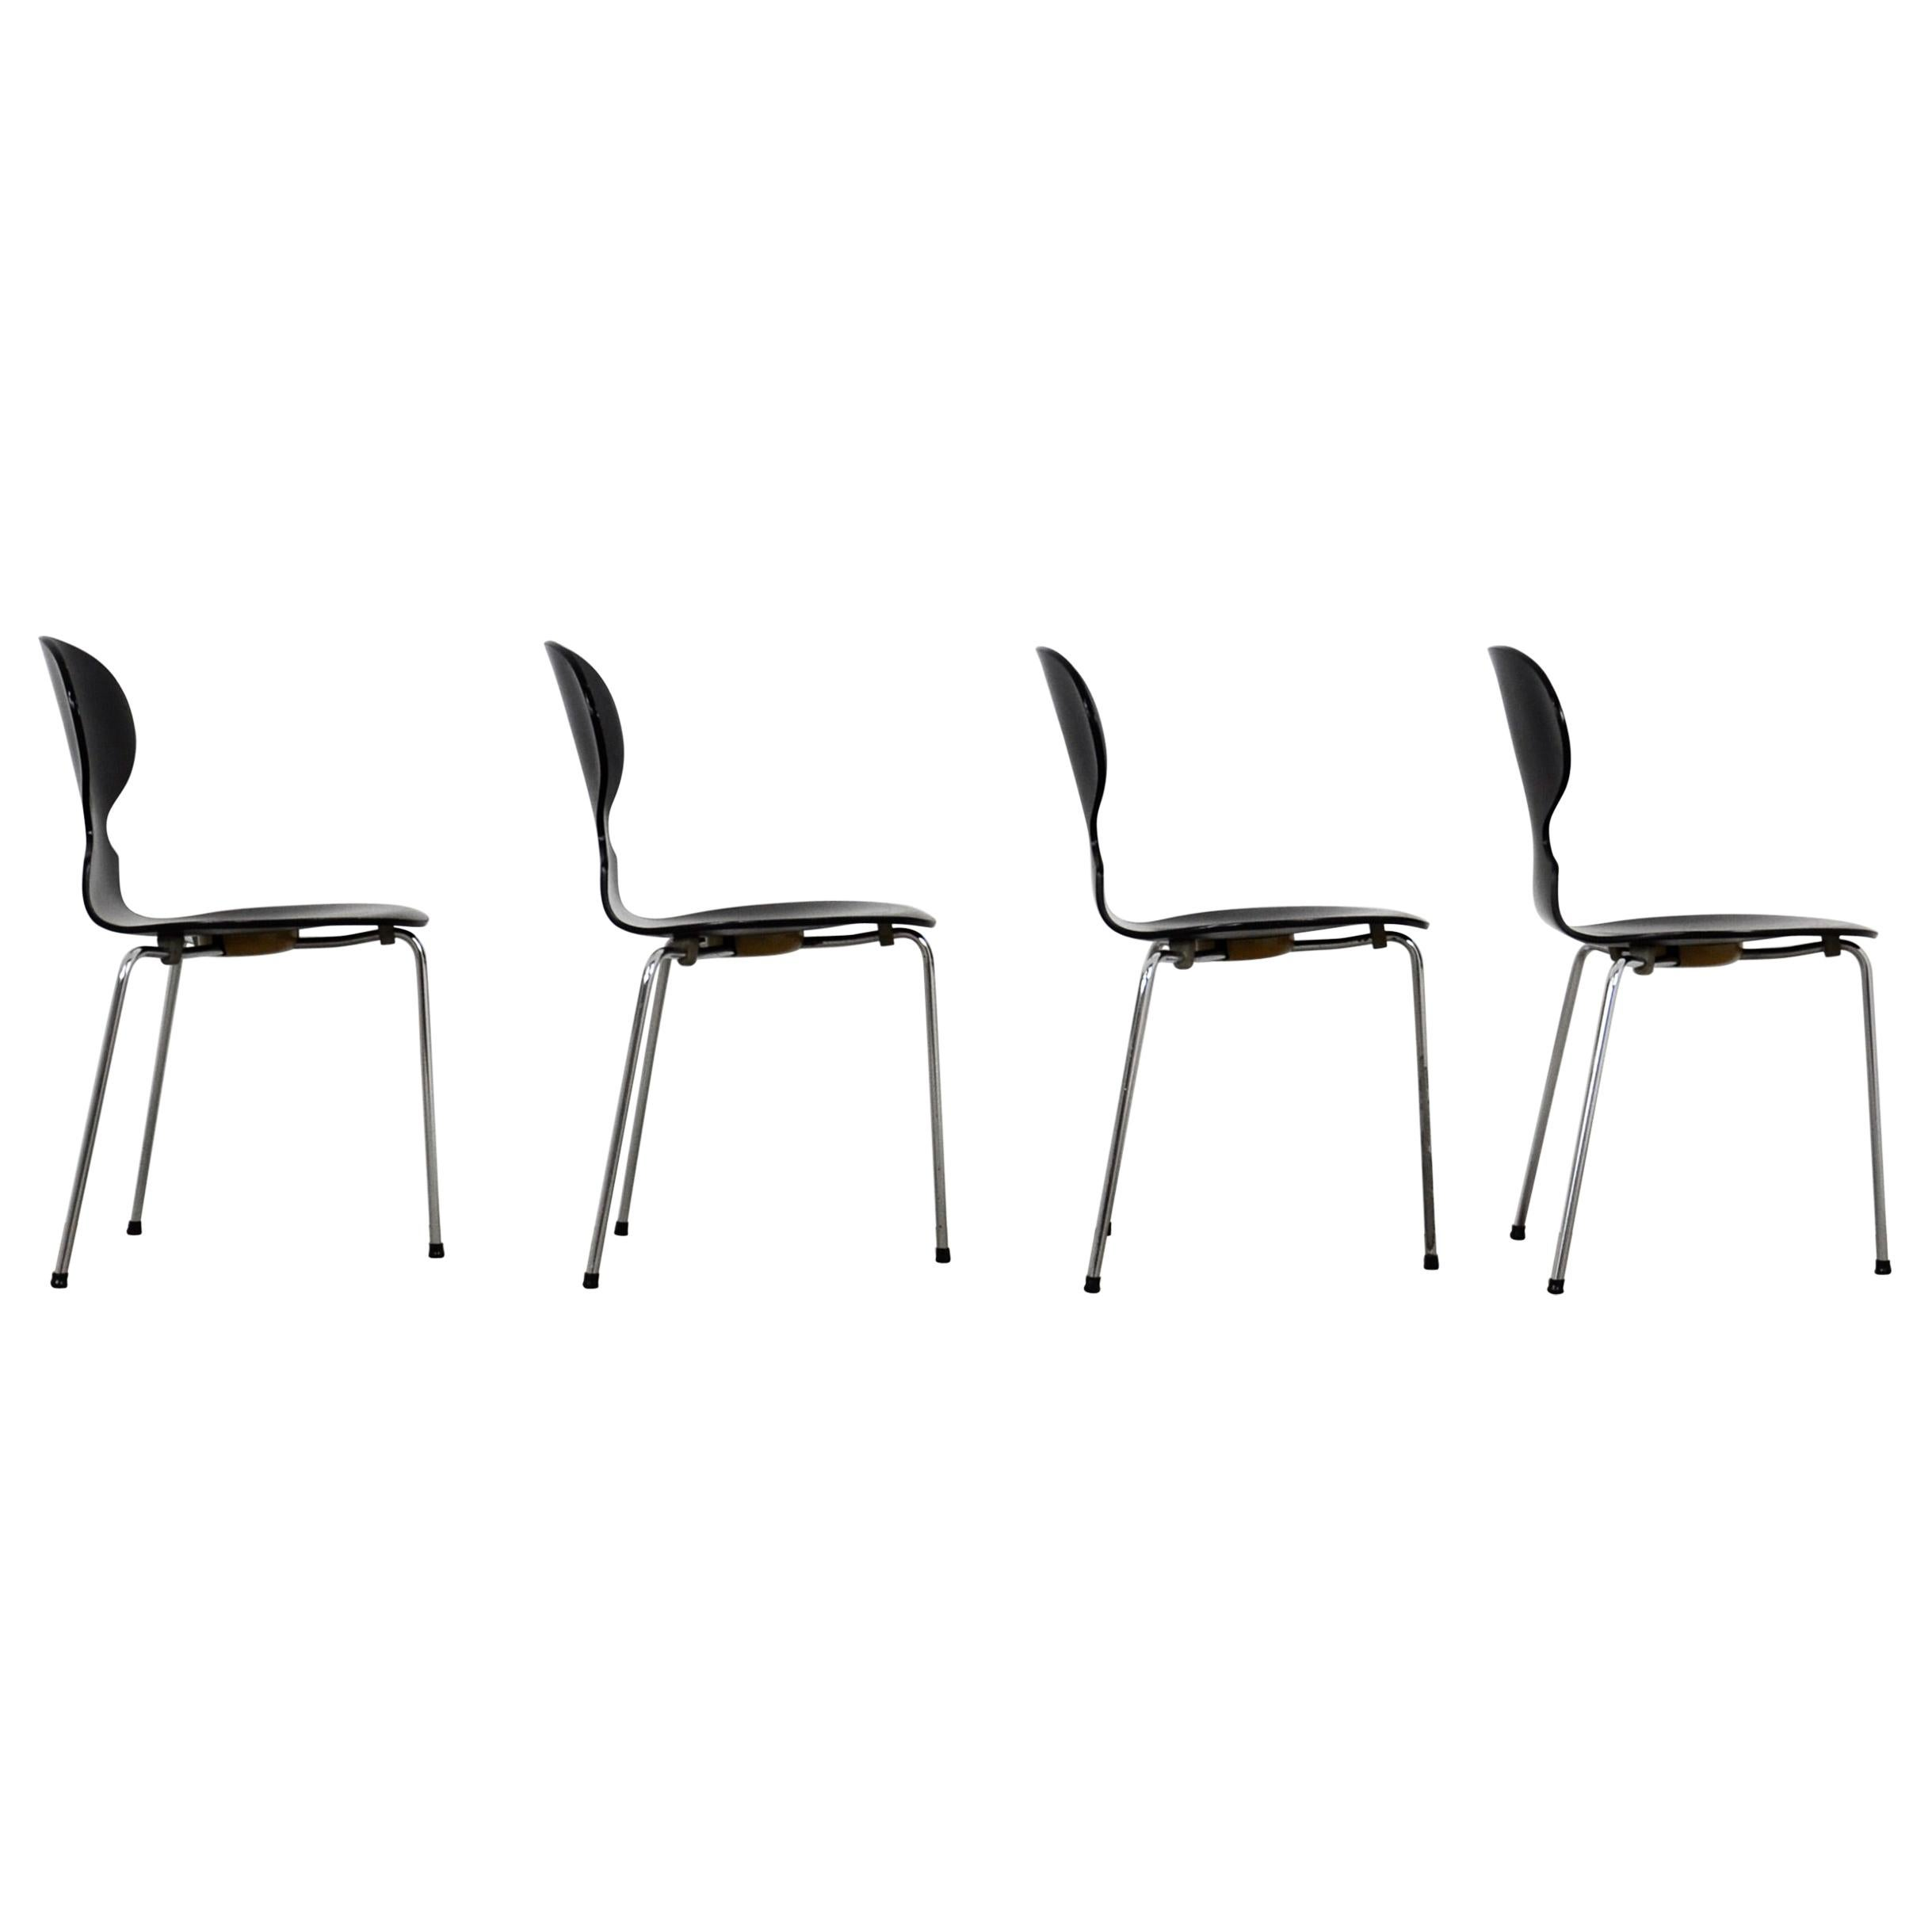 Model Ant Dining Chairs by Arne Jacobsen for Fritz Hansen, 1950s, Set of 4